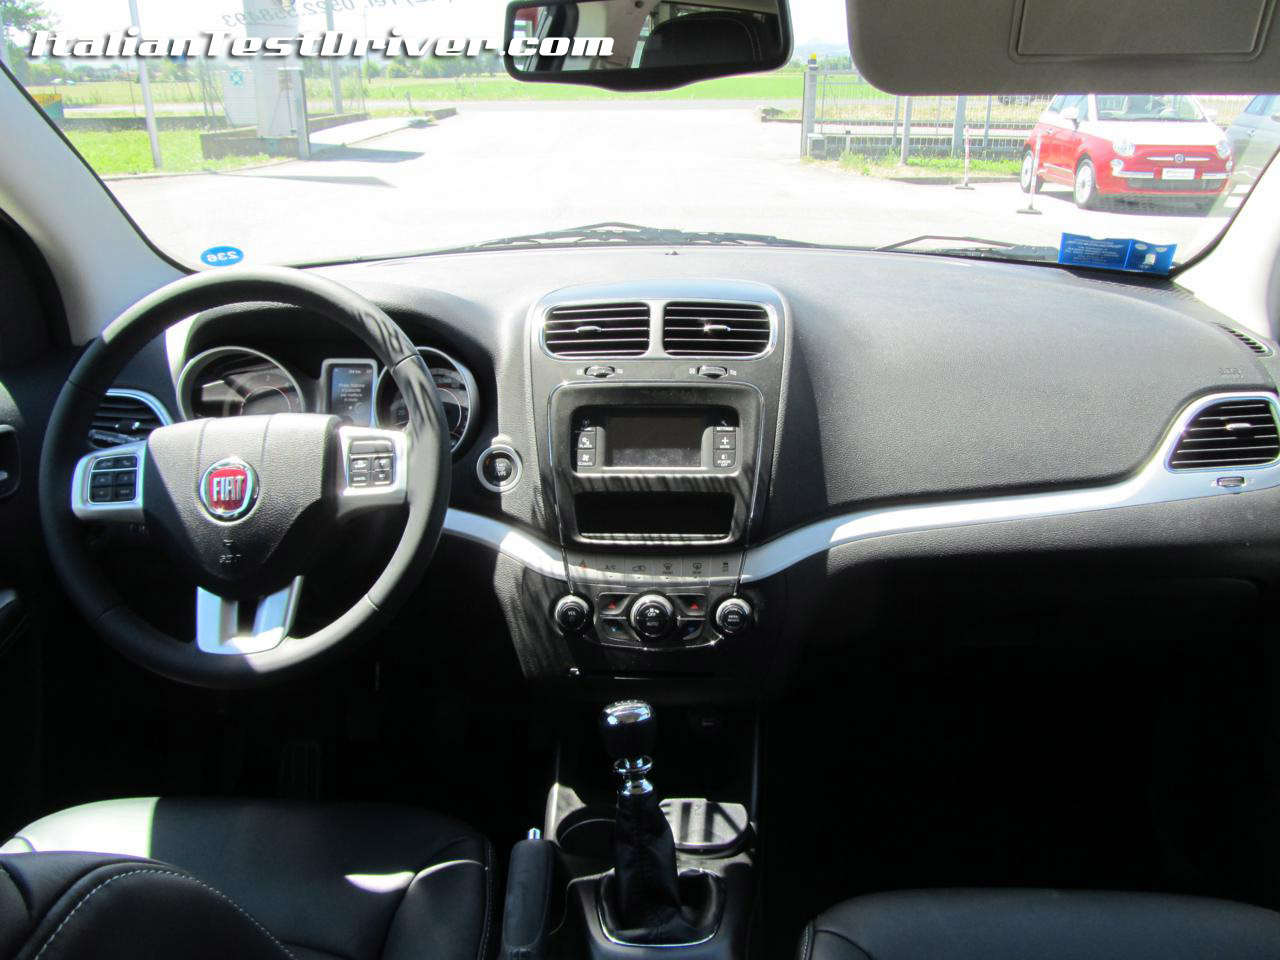 test drive fiat freemont 2 0 da 140 cv e 170 cv interni 1 italiantestdriver. Black Bedroom Furniture Sets. Home Design Ideas